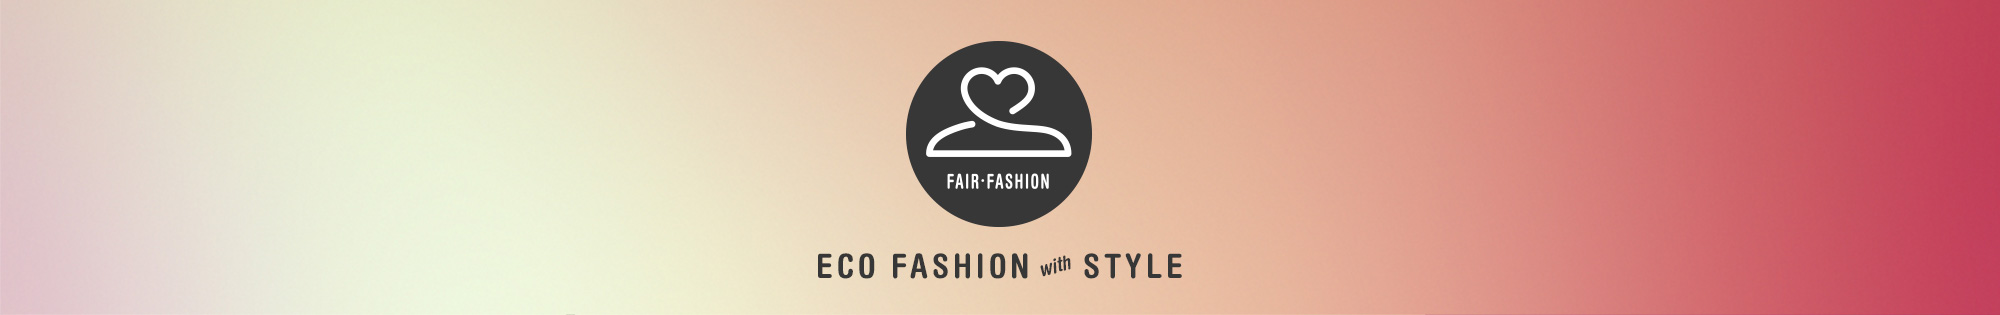 FairFashion -